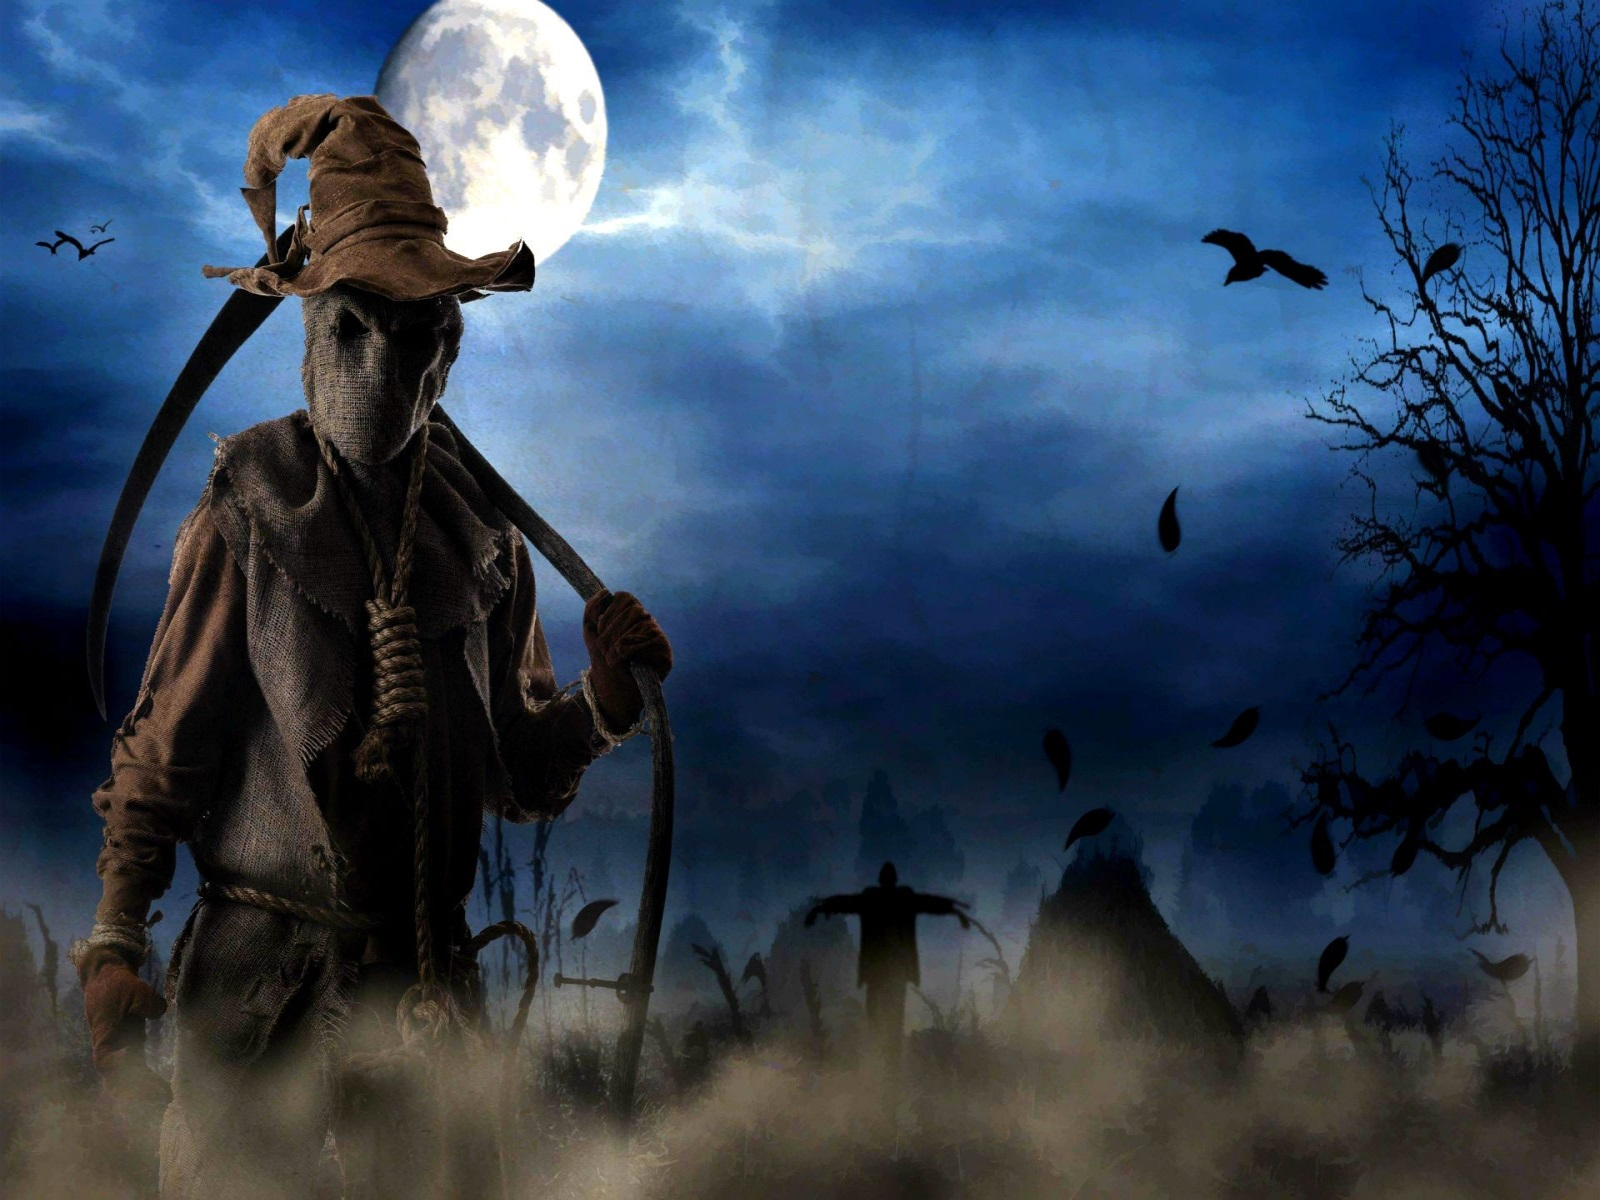 Moving Wallpapers High Resolution Download: High Resolution Halloween Pictures Wallpapers Backgrounds